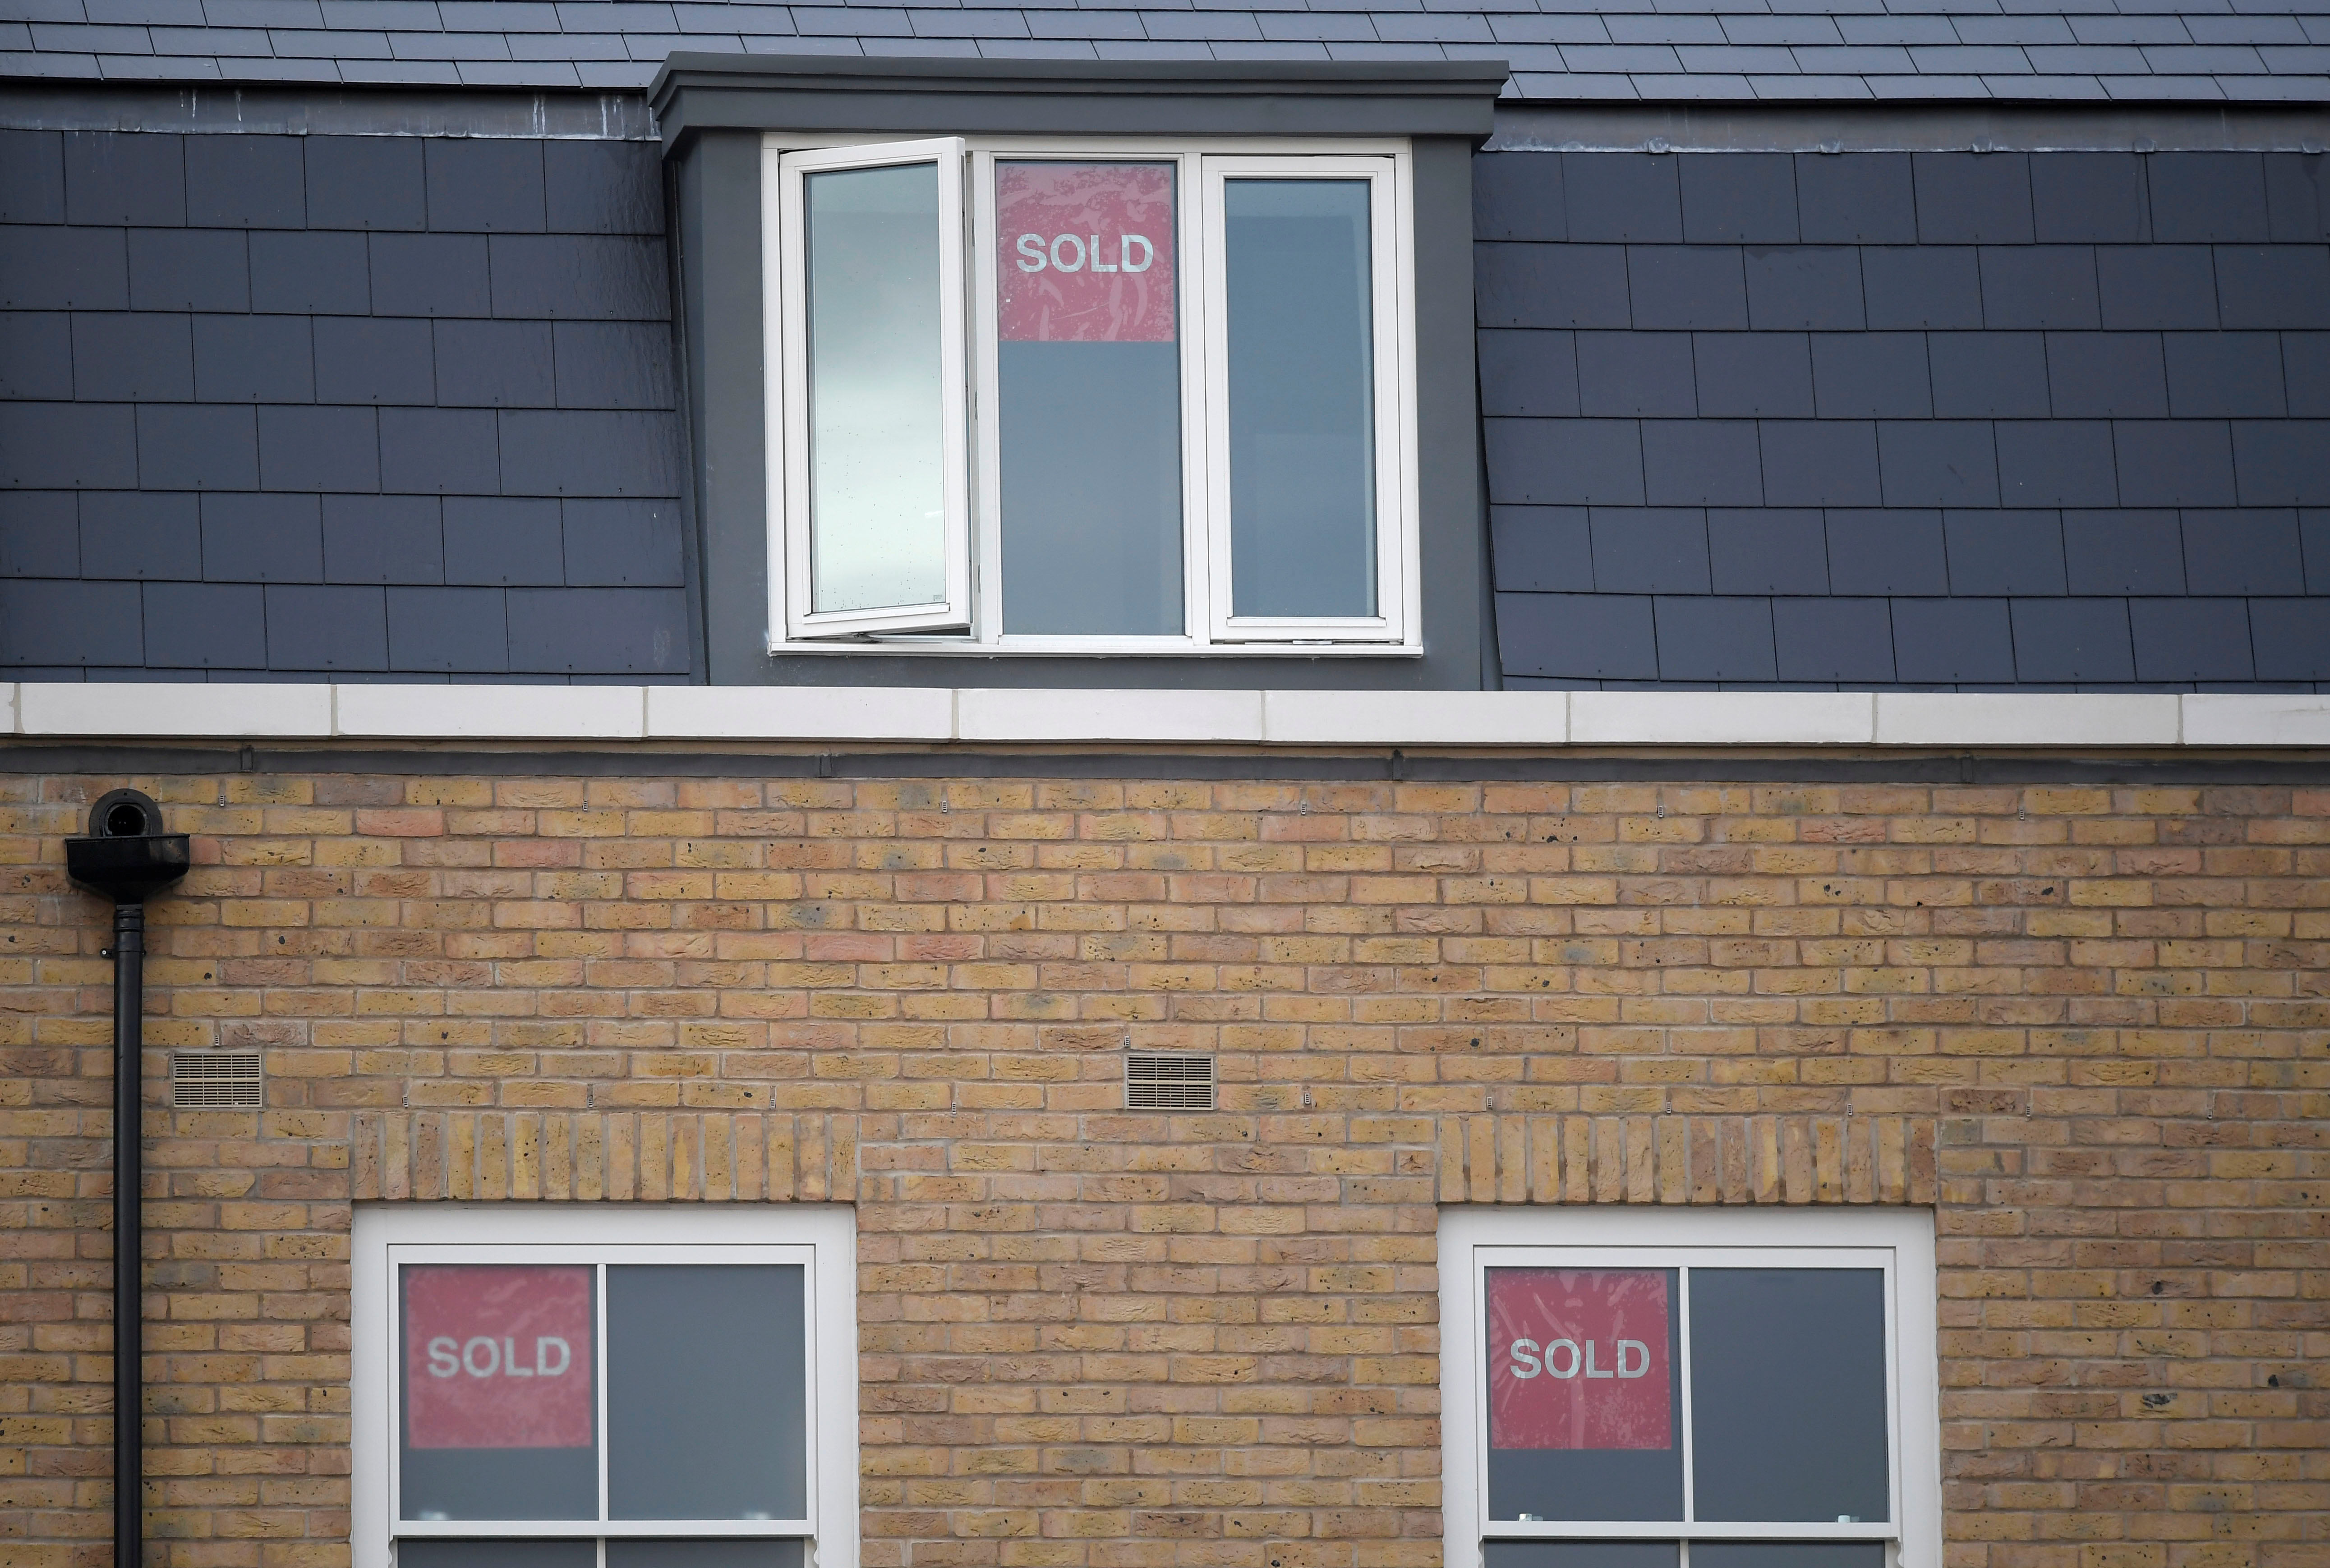 Property sold signs are seen on windows of a group of newly built houses in west London, Britain, November 23, 2017. REUTERS/Toby Melville/Files